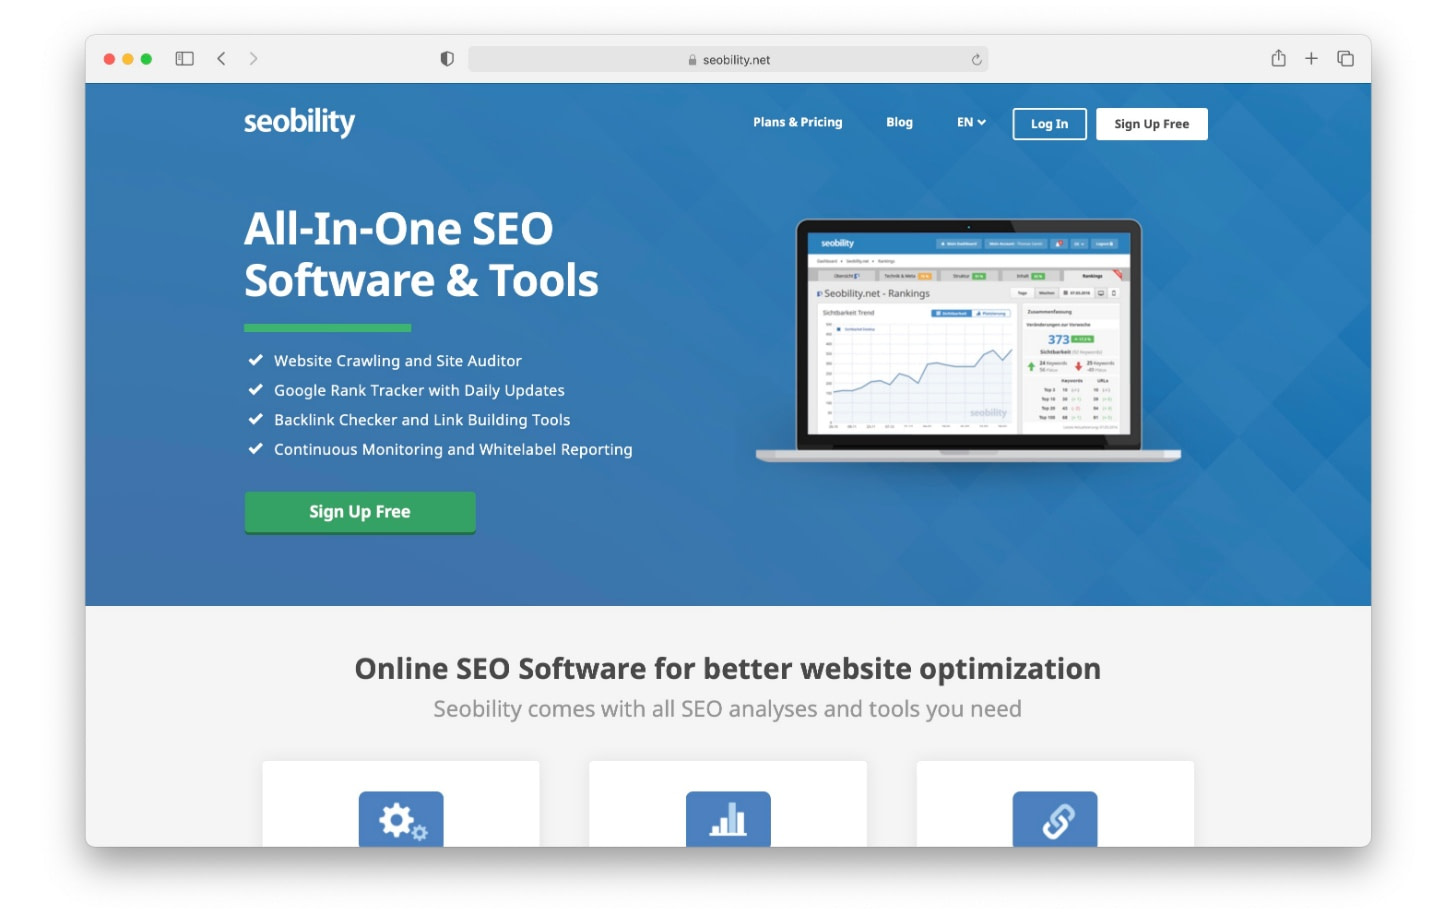 SEObility has a range of different SEO tools in one place